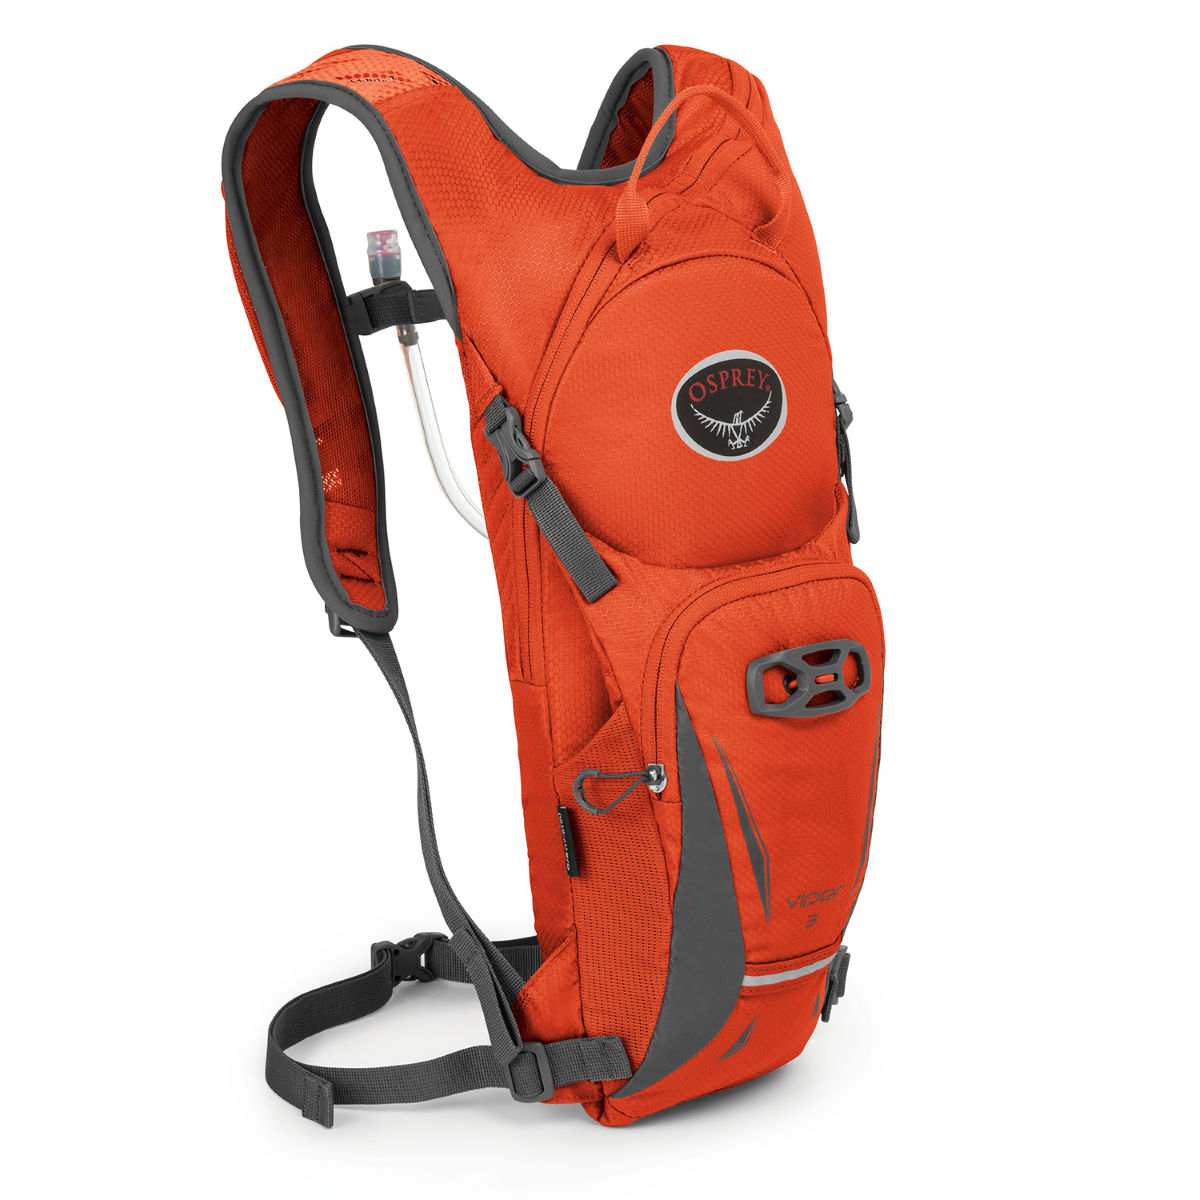 Sac d'hydratation Osprey Viper 3 - Taille unique Orange